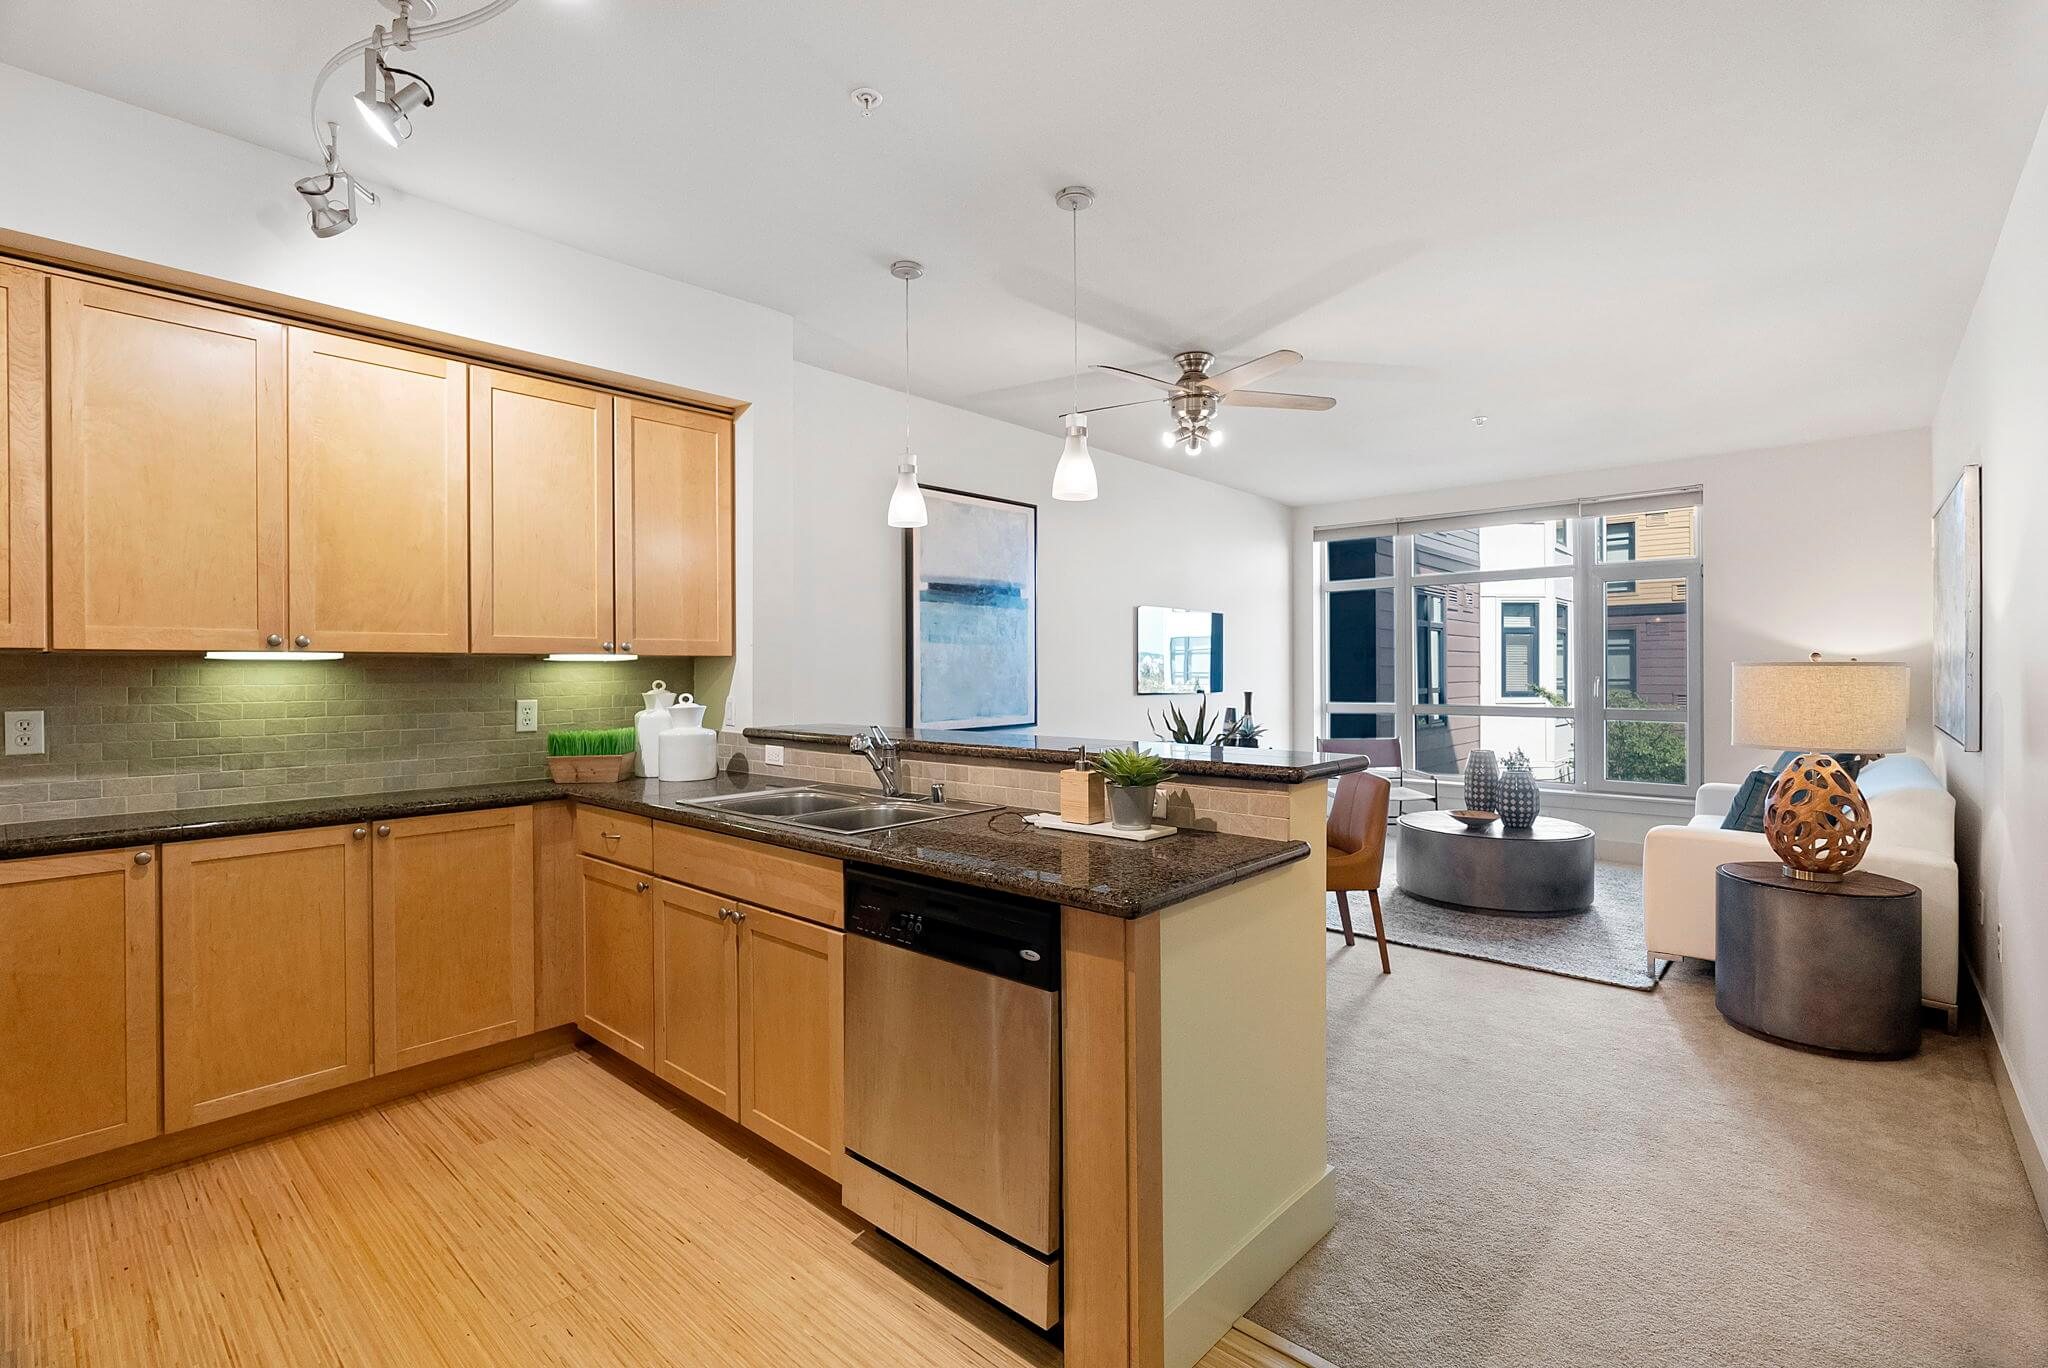 Kitchen is open to the main living space